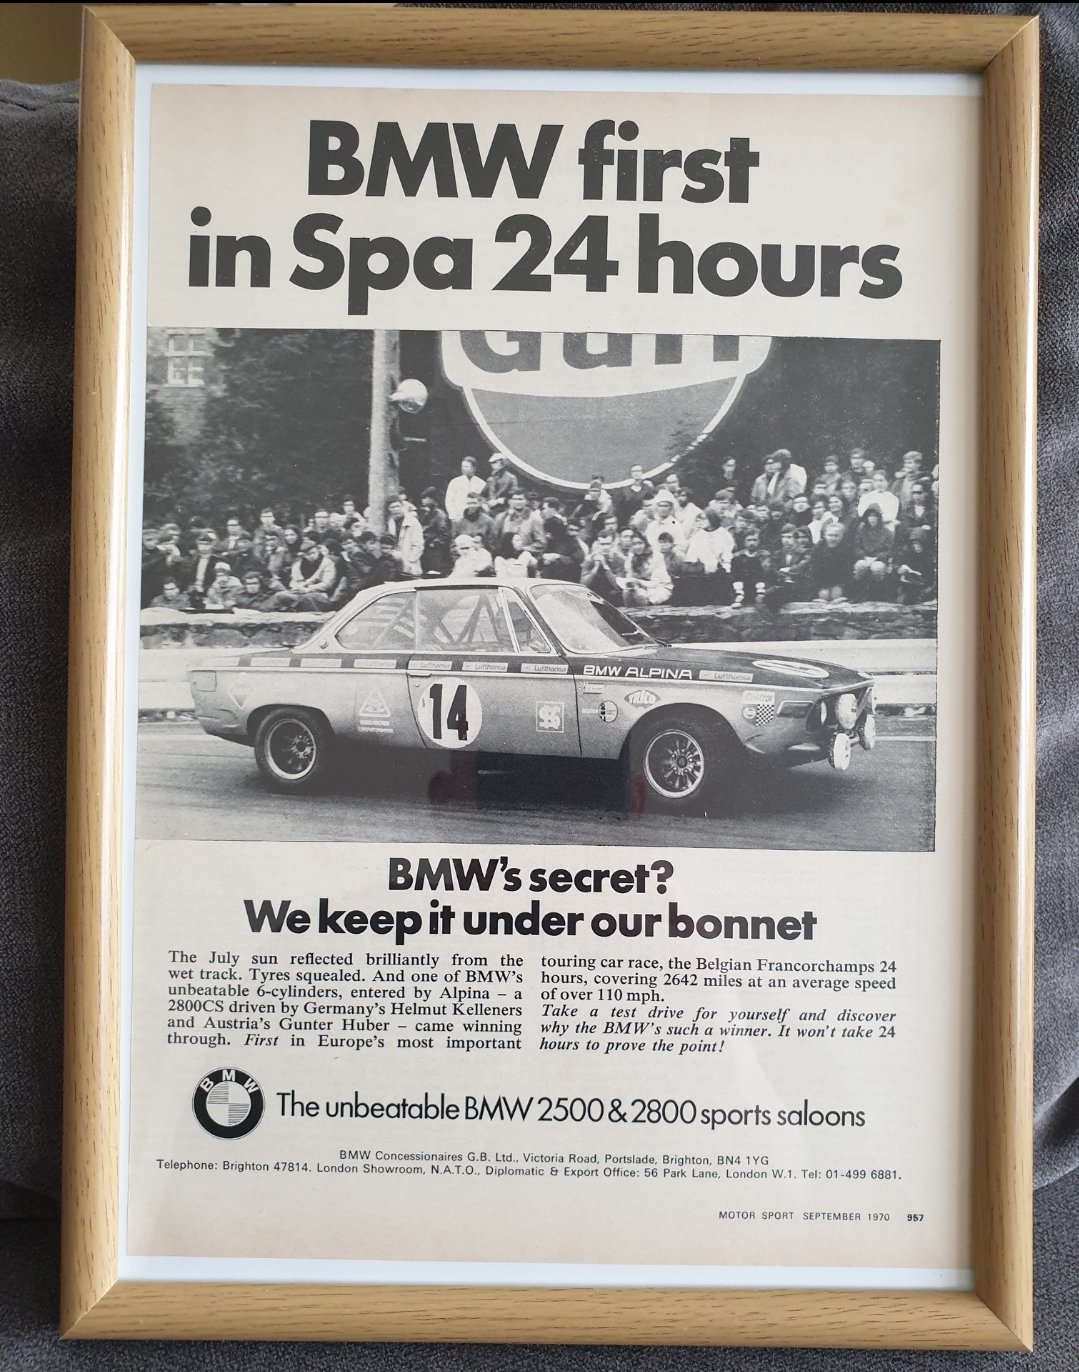 1970 BMW 2800 Framed Advert Original  For Sale (picture 1 of 2)